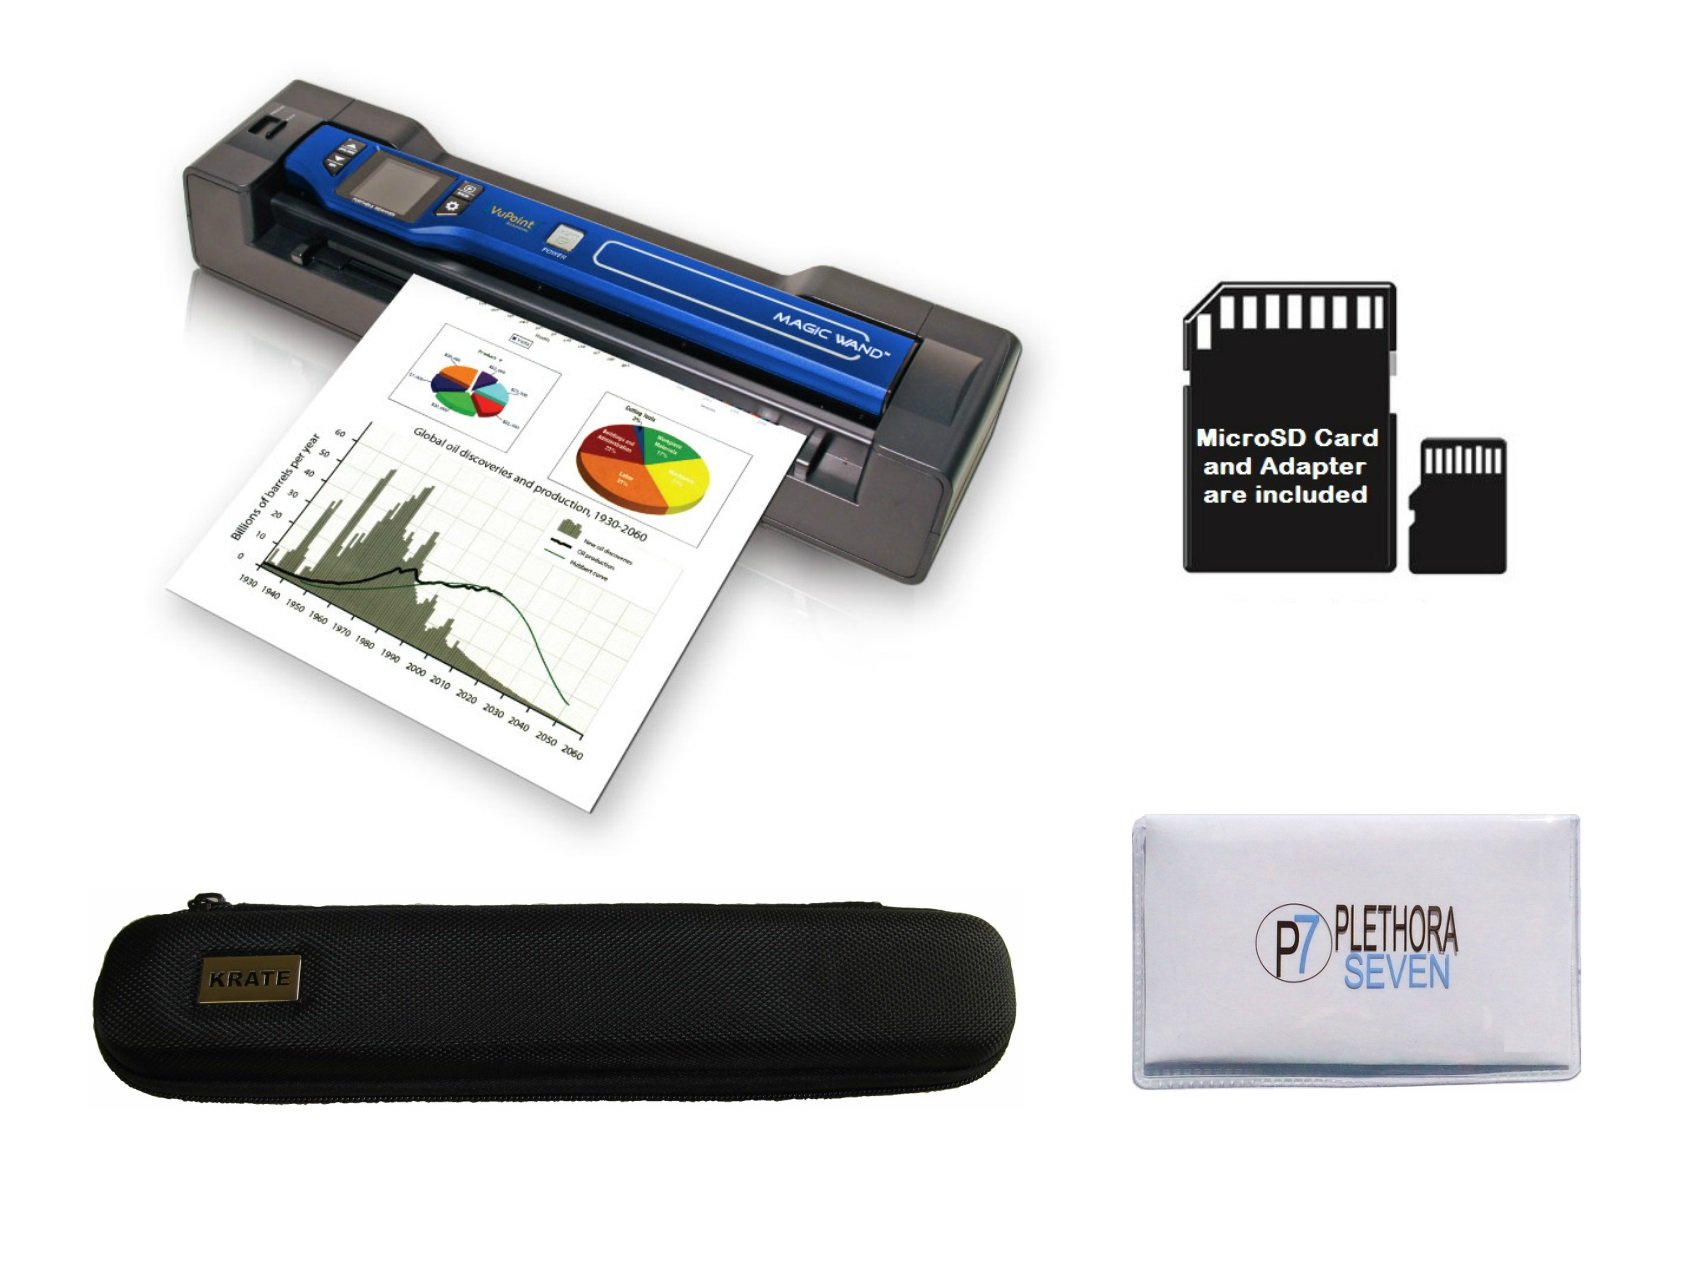 Vupoint ST470 Magic Wand Portable Scanner with Auto-Feed Docking Station + Hard Protective Travel Carrying Case + 8gb MicroSD Card - 1200dpi, PDF/JPEG, 1.5 LCD - for Photo, Document, Receipt (Blue)